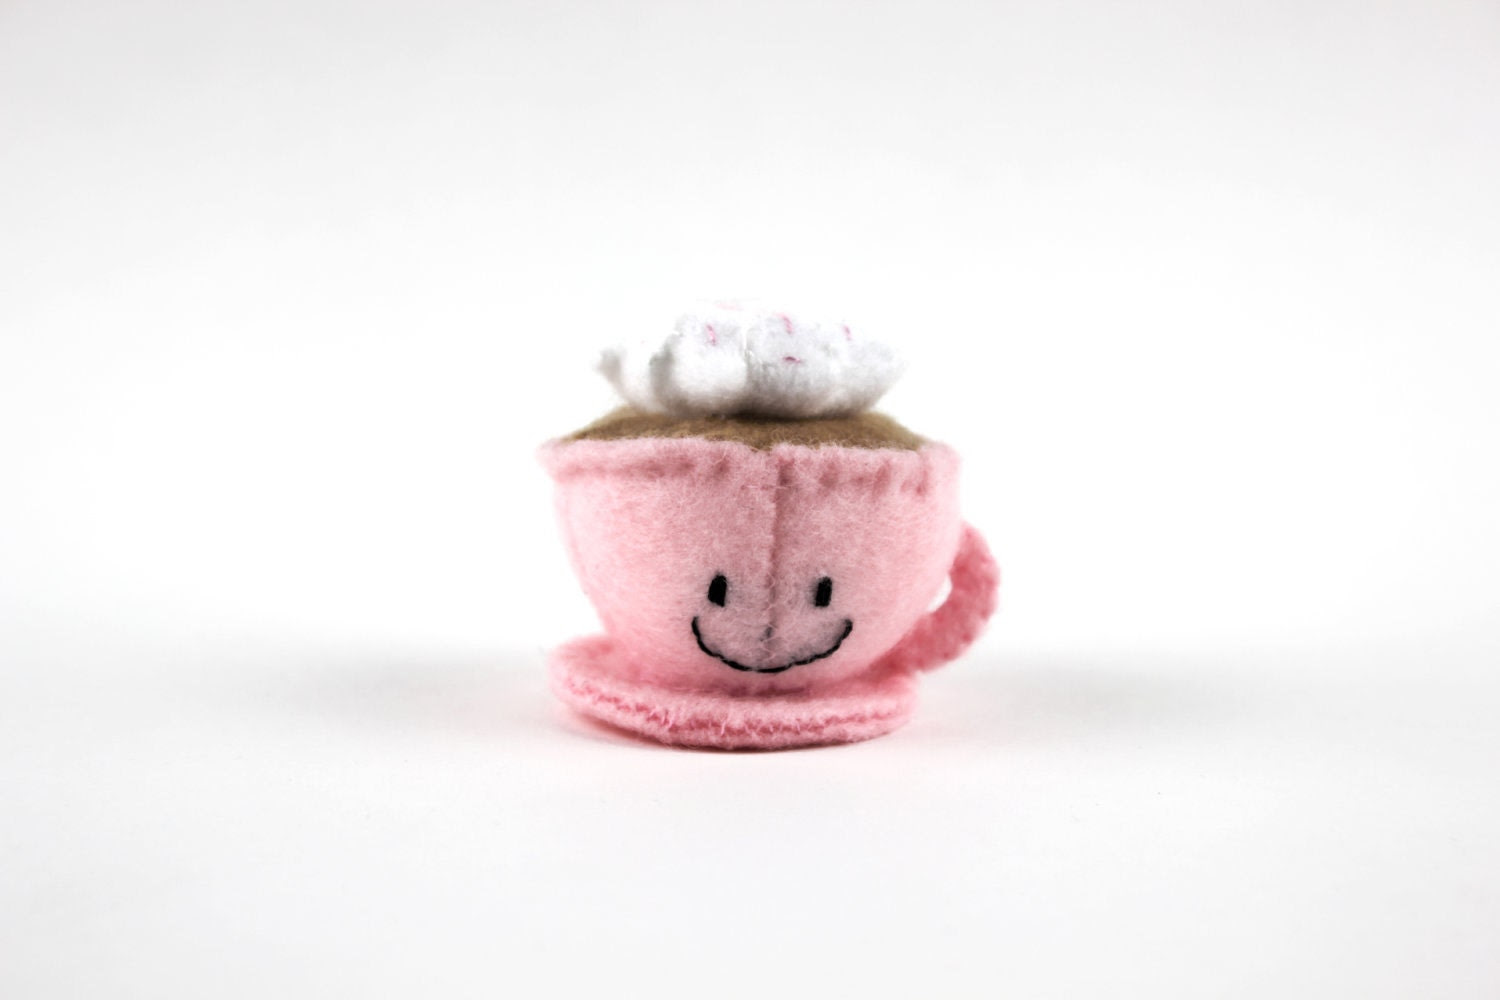 I Like You a Latte - Pink Plush Toy - Coffee Cup - EpicToyChest